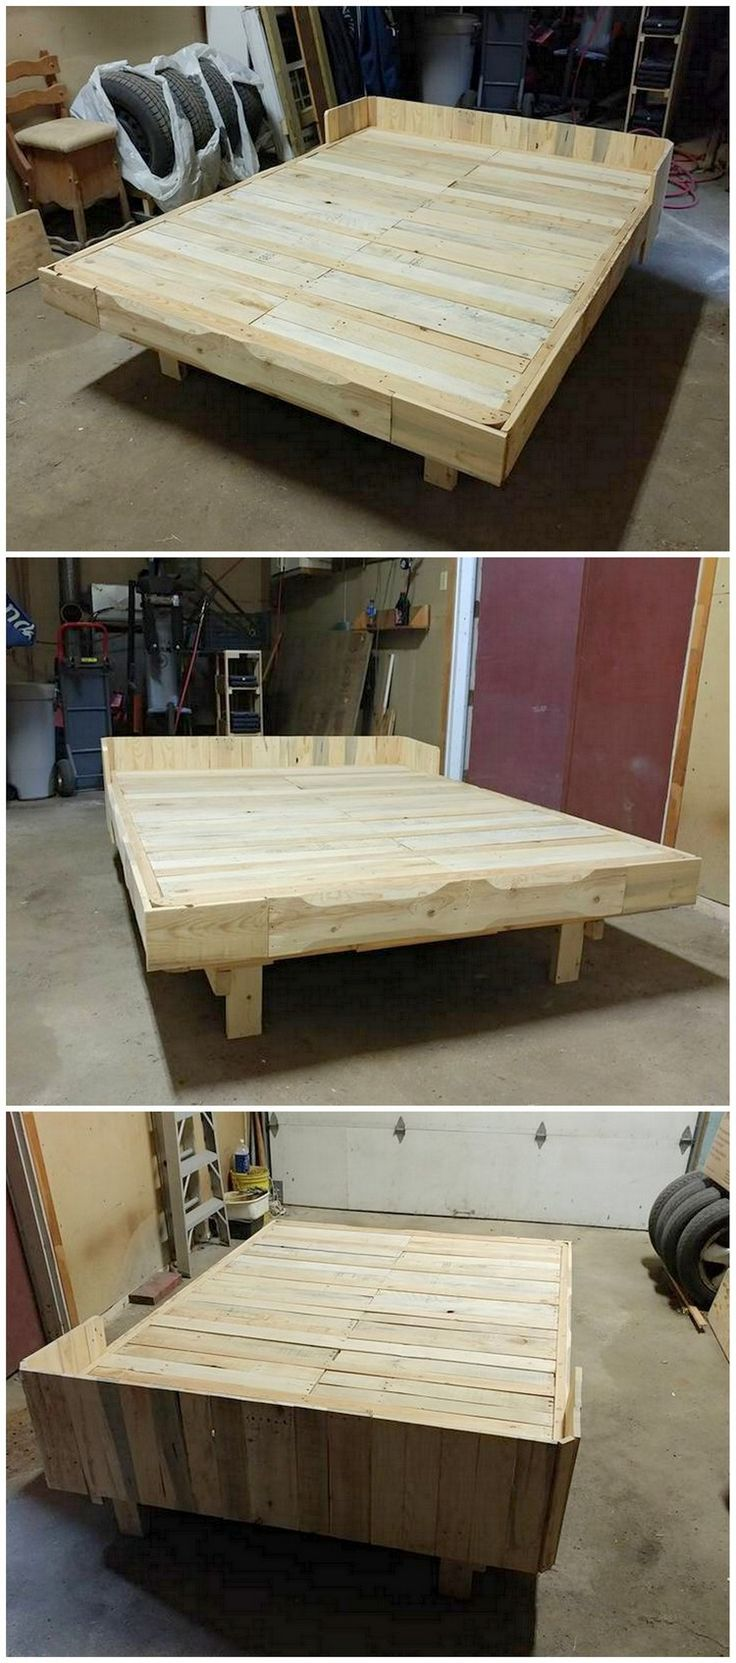 This looks a real centerpiece of your living room in the form of bed frame designed by using wood pallet material. Recycling of the wood pallet has been awesomely done in the whole bed frame. Small planks are also part of this bed frame as located in the top down of the bed frame as the support system.